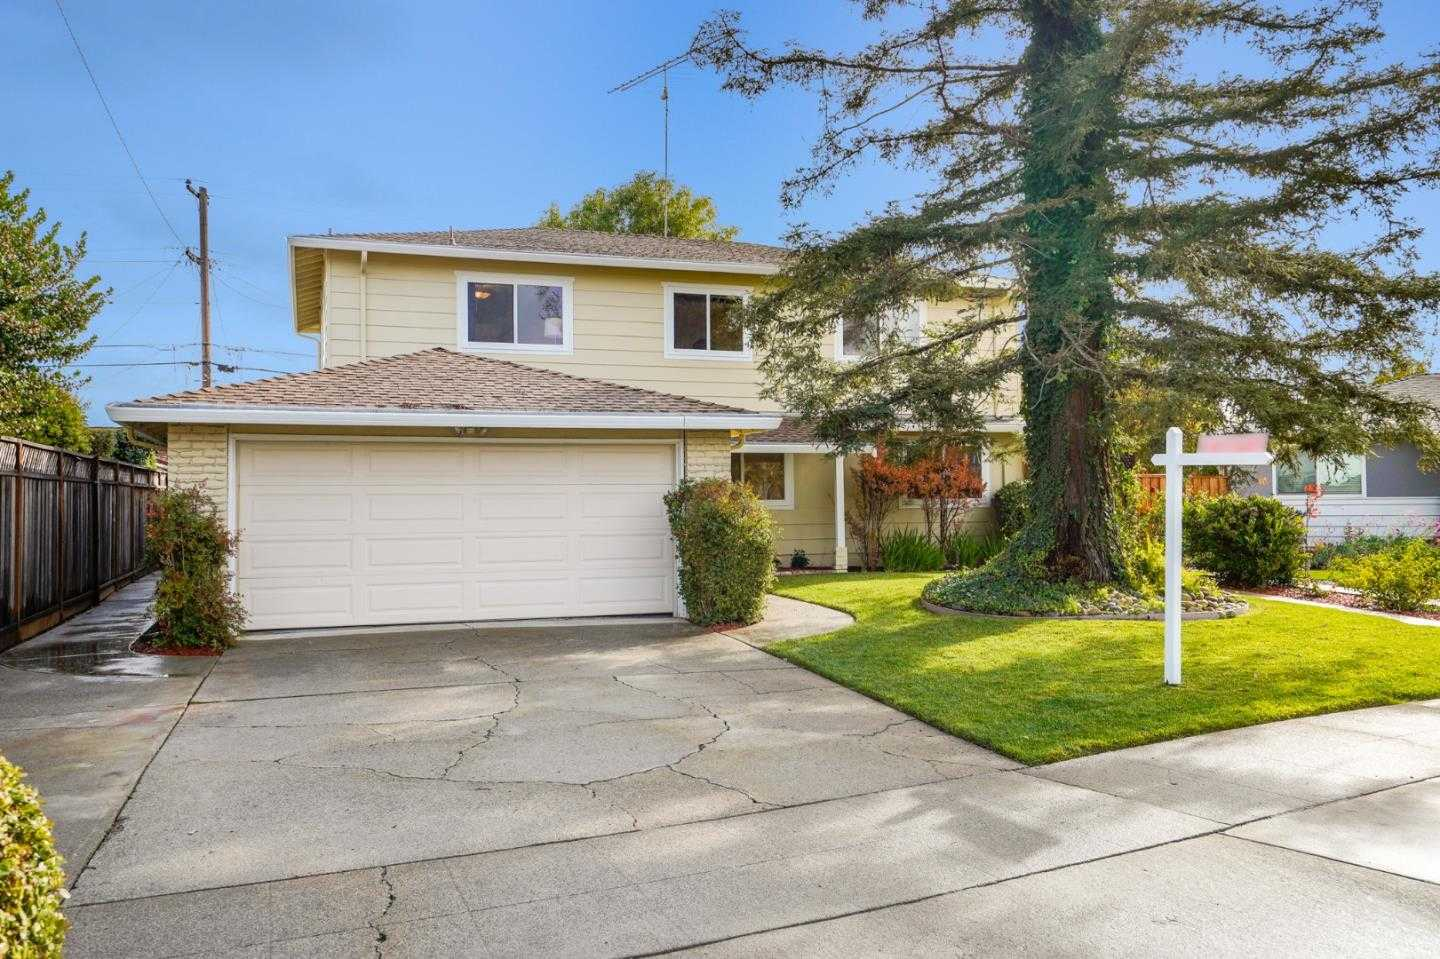 $1,850,000 - 5Br/3Ba -  for Sale in San Jose